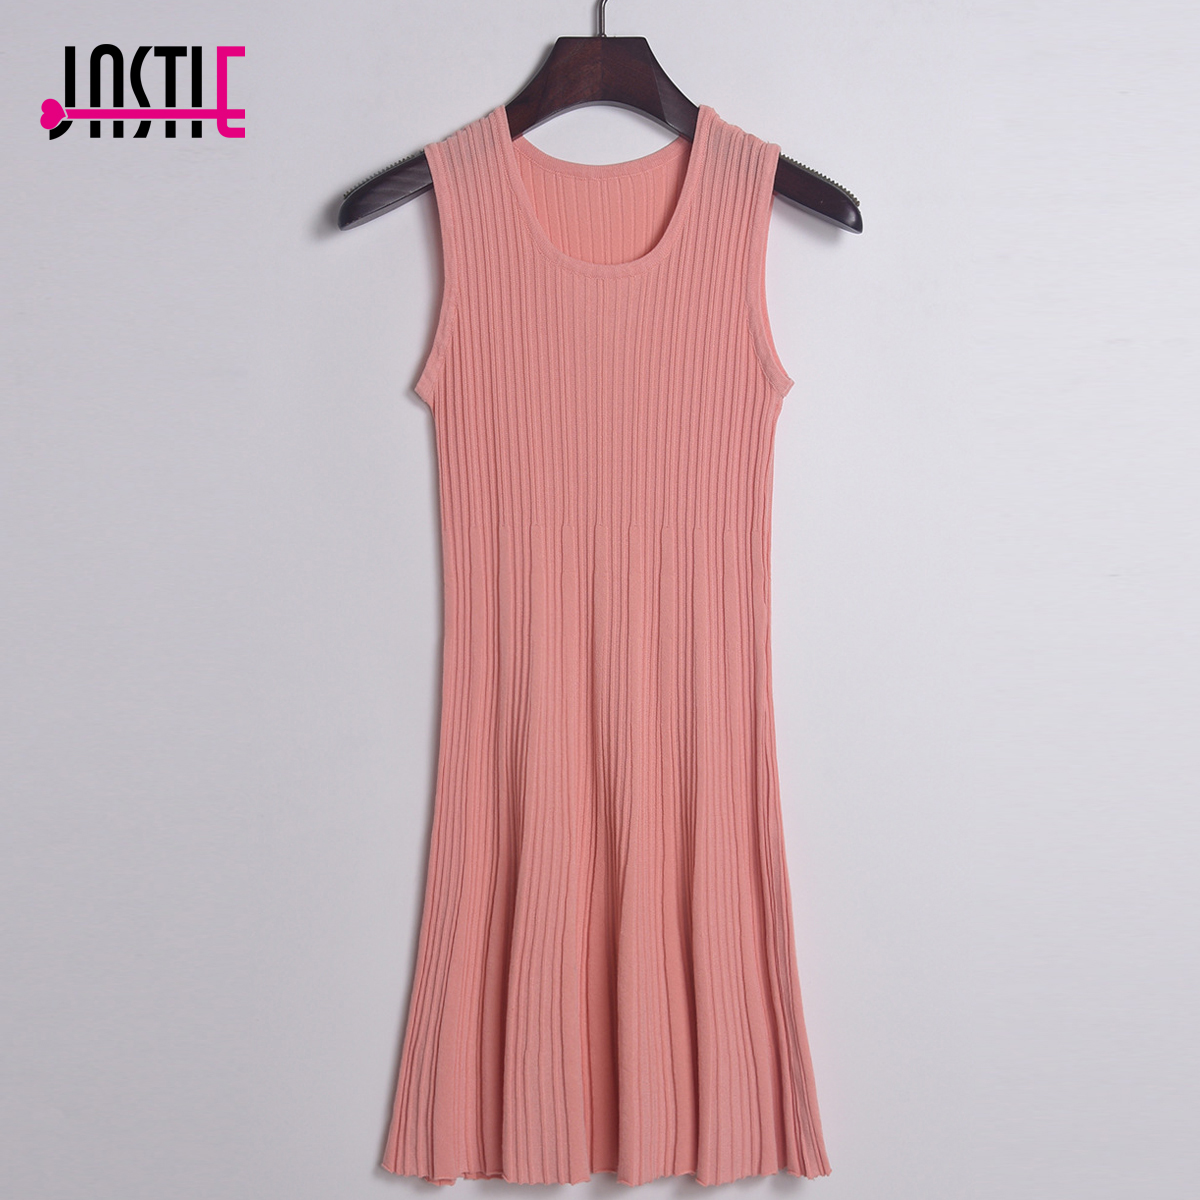 Jastie Spring Summer Women Knitted Dress O-Neck Sleeveless Vest Mini Dresses Knitting Casual Pleated Tank Dress Jersey Vestidos женское платье dresses dress women 2015 printsleeveless o summer style women dress